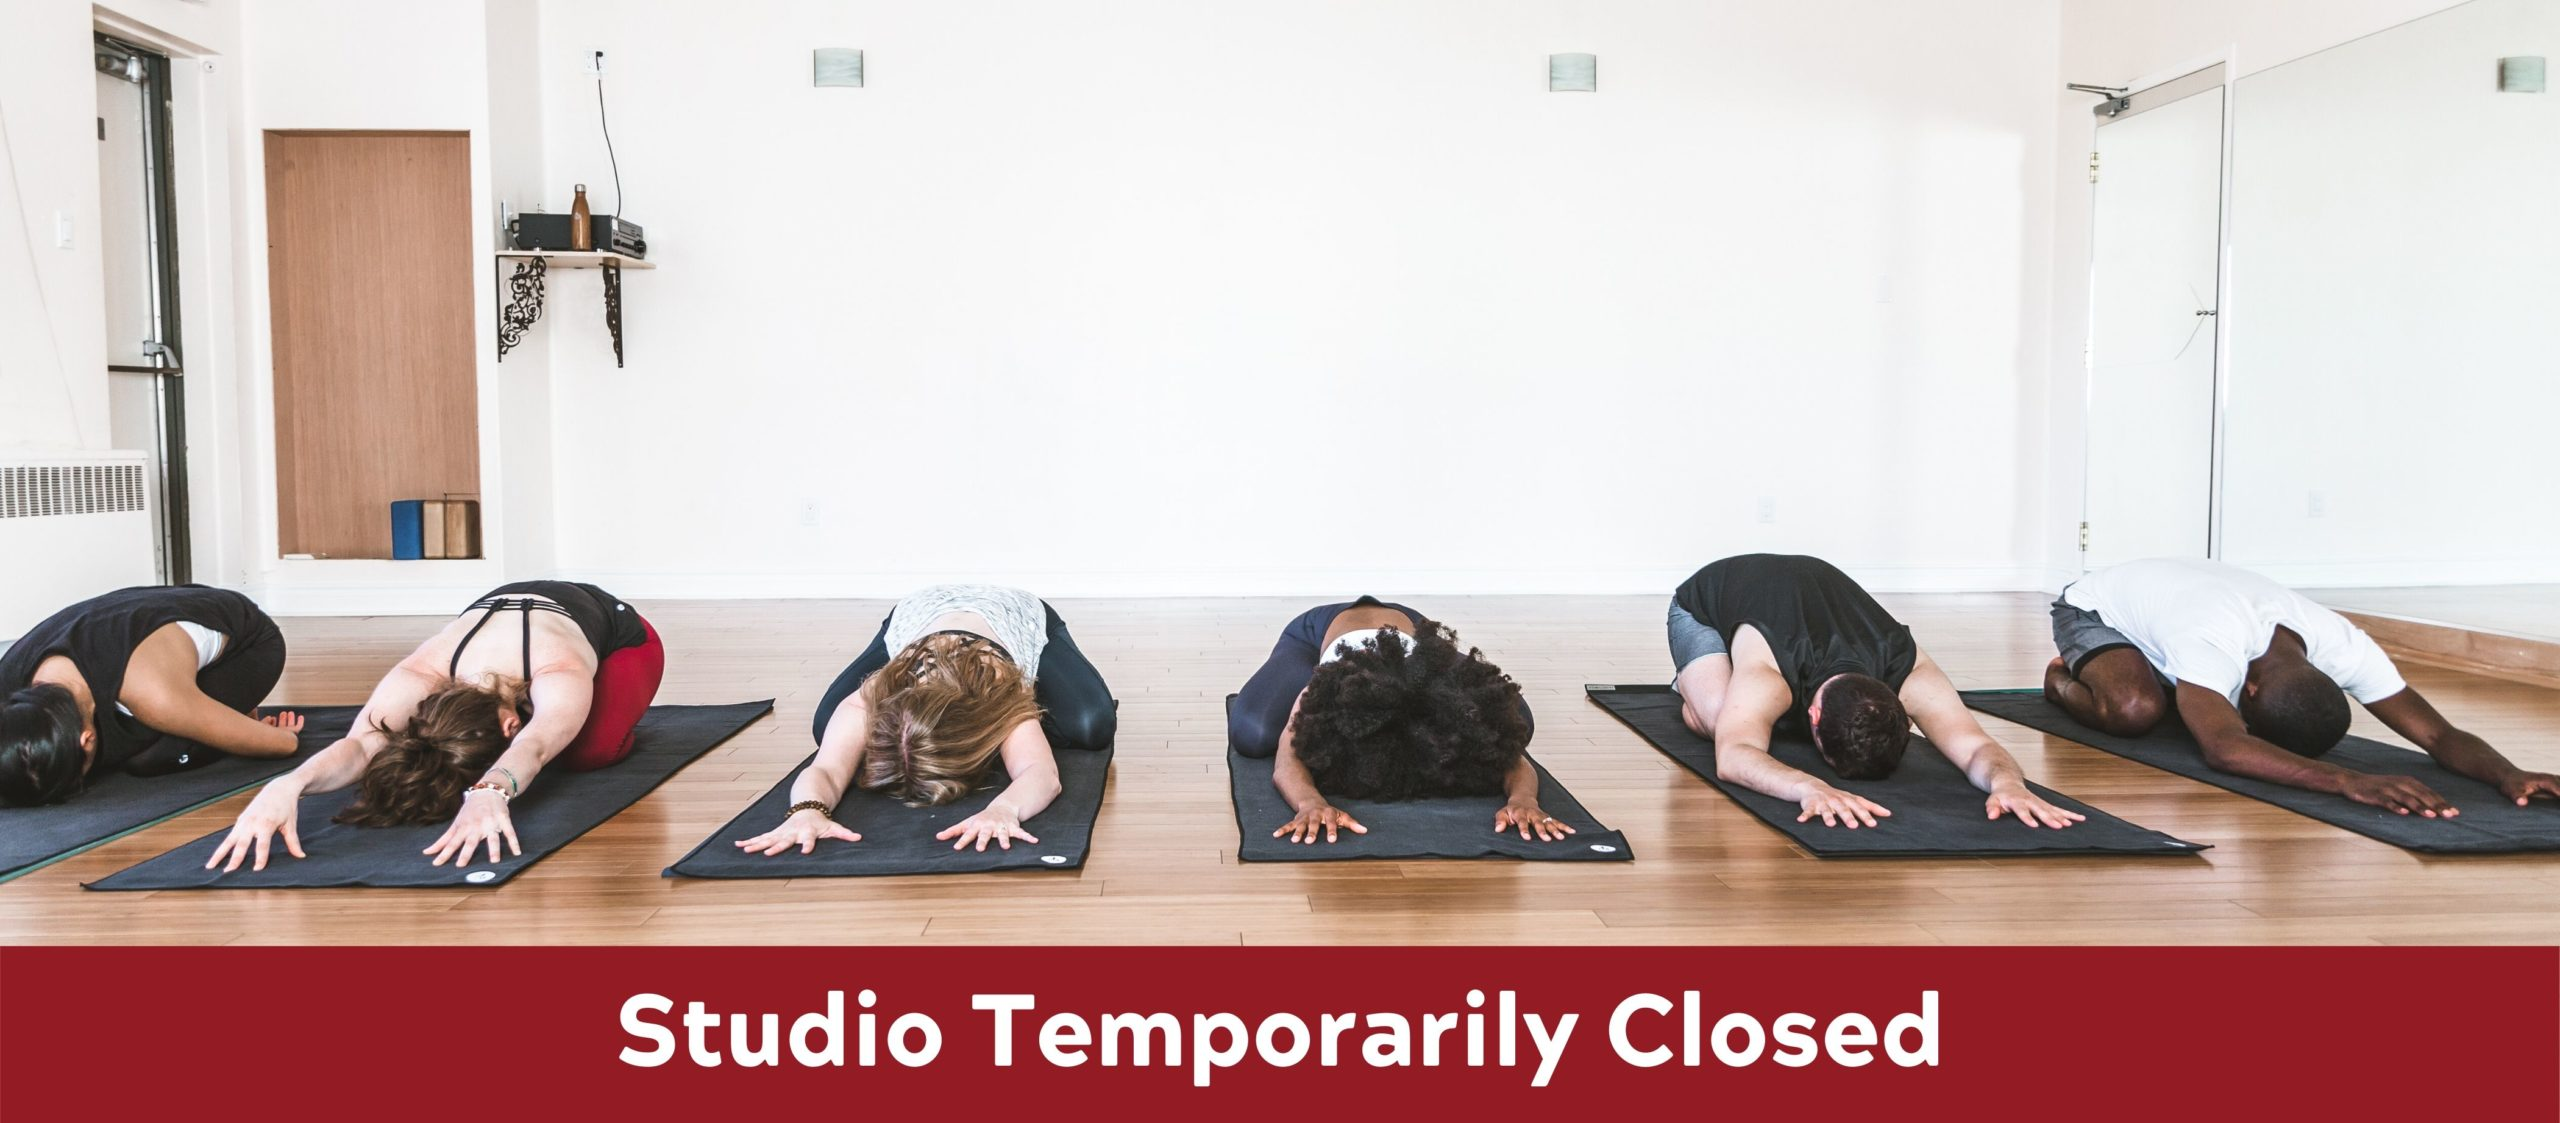 STUDIO TEMPORARILY CLOSED MAR 16 ONWARDS